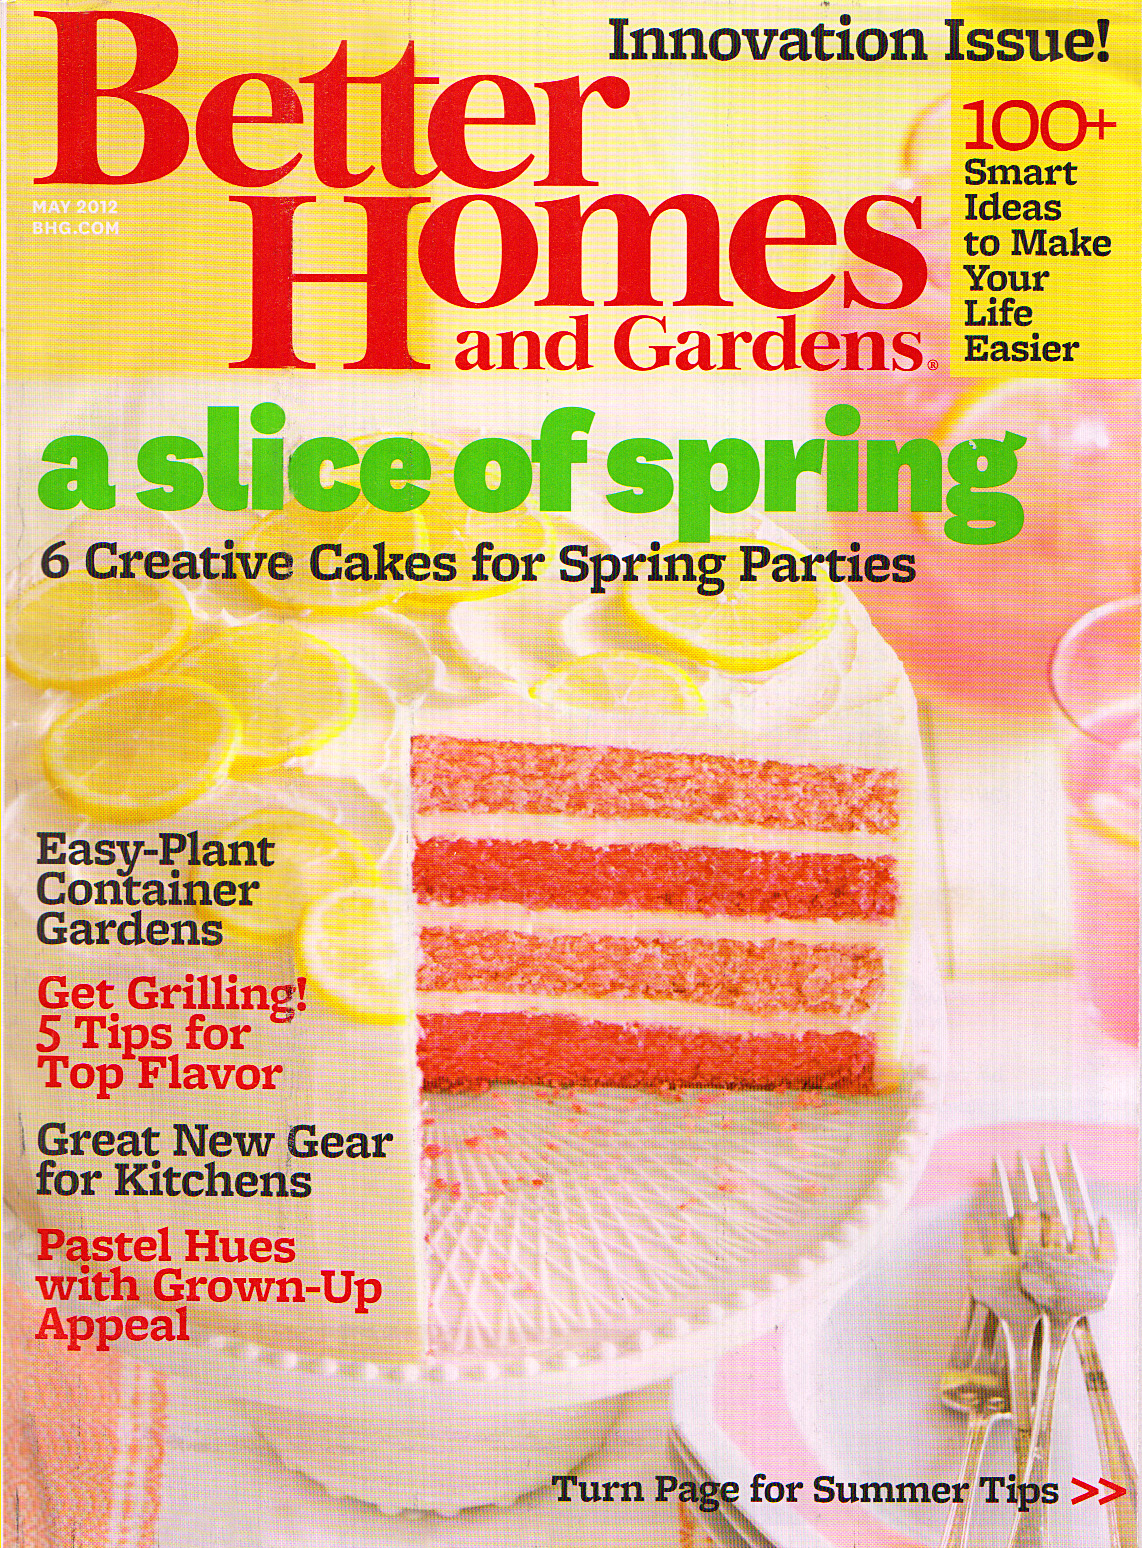 mothers day gift ideas personalized stationery featured in better homes and gardens - Google Better Homes And Gardens